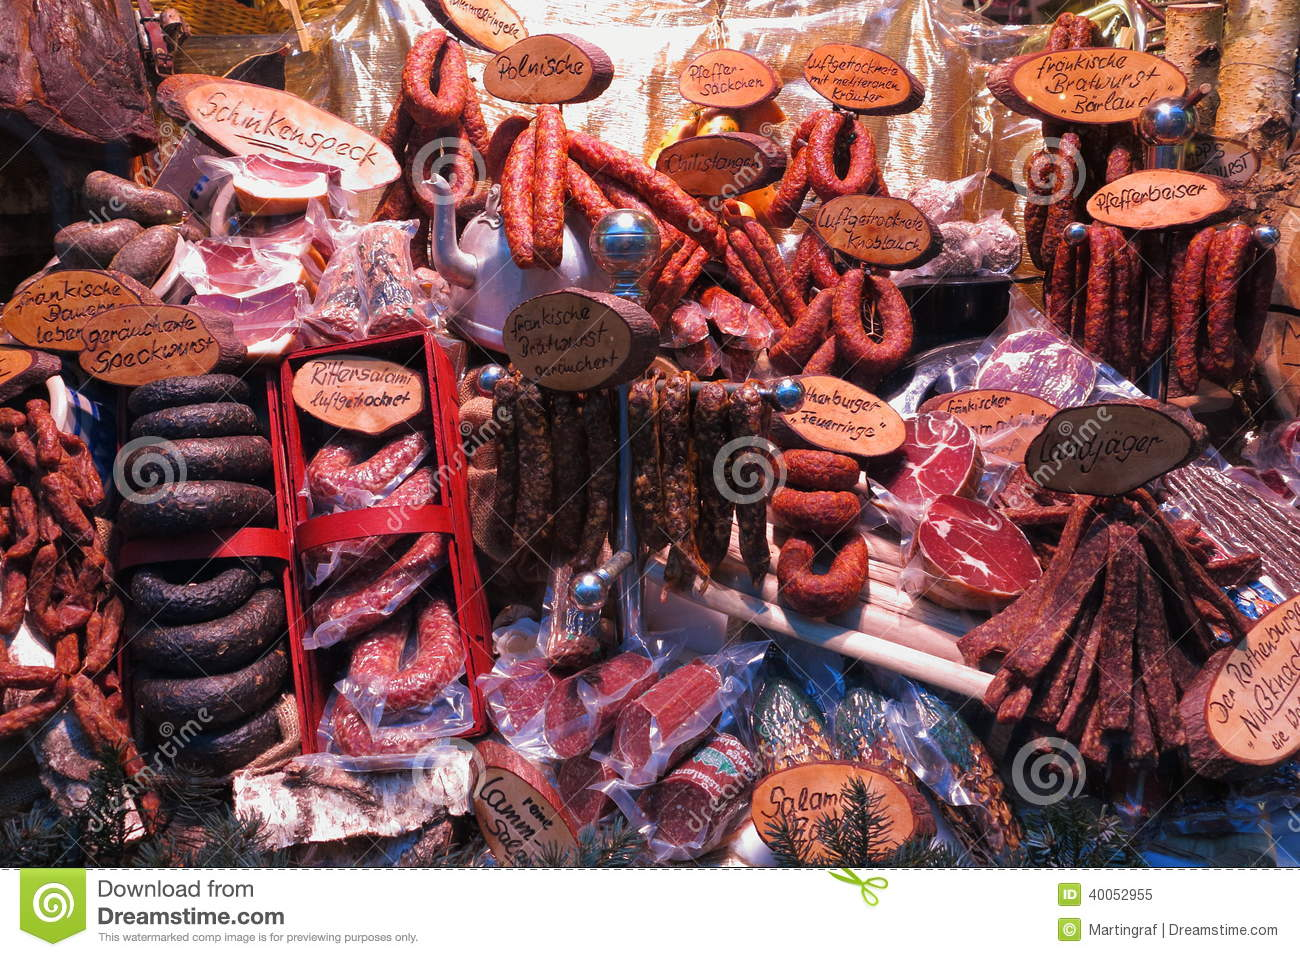 German Sausage And Meat Variety Food Supply Stock Image